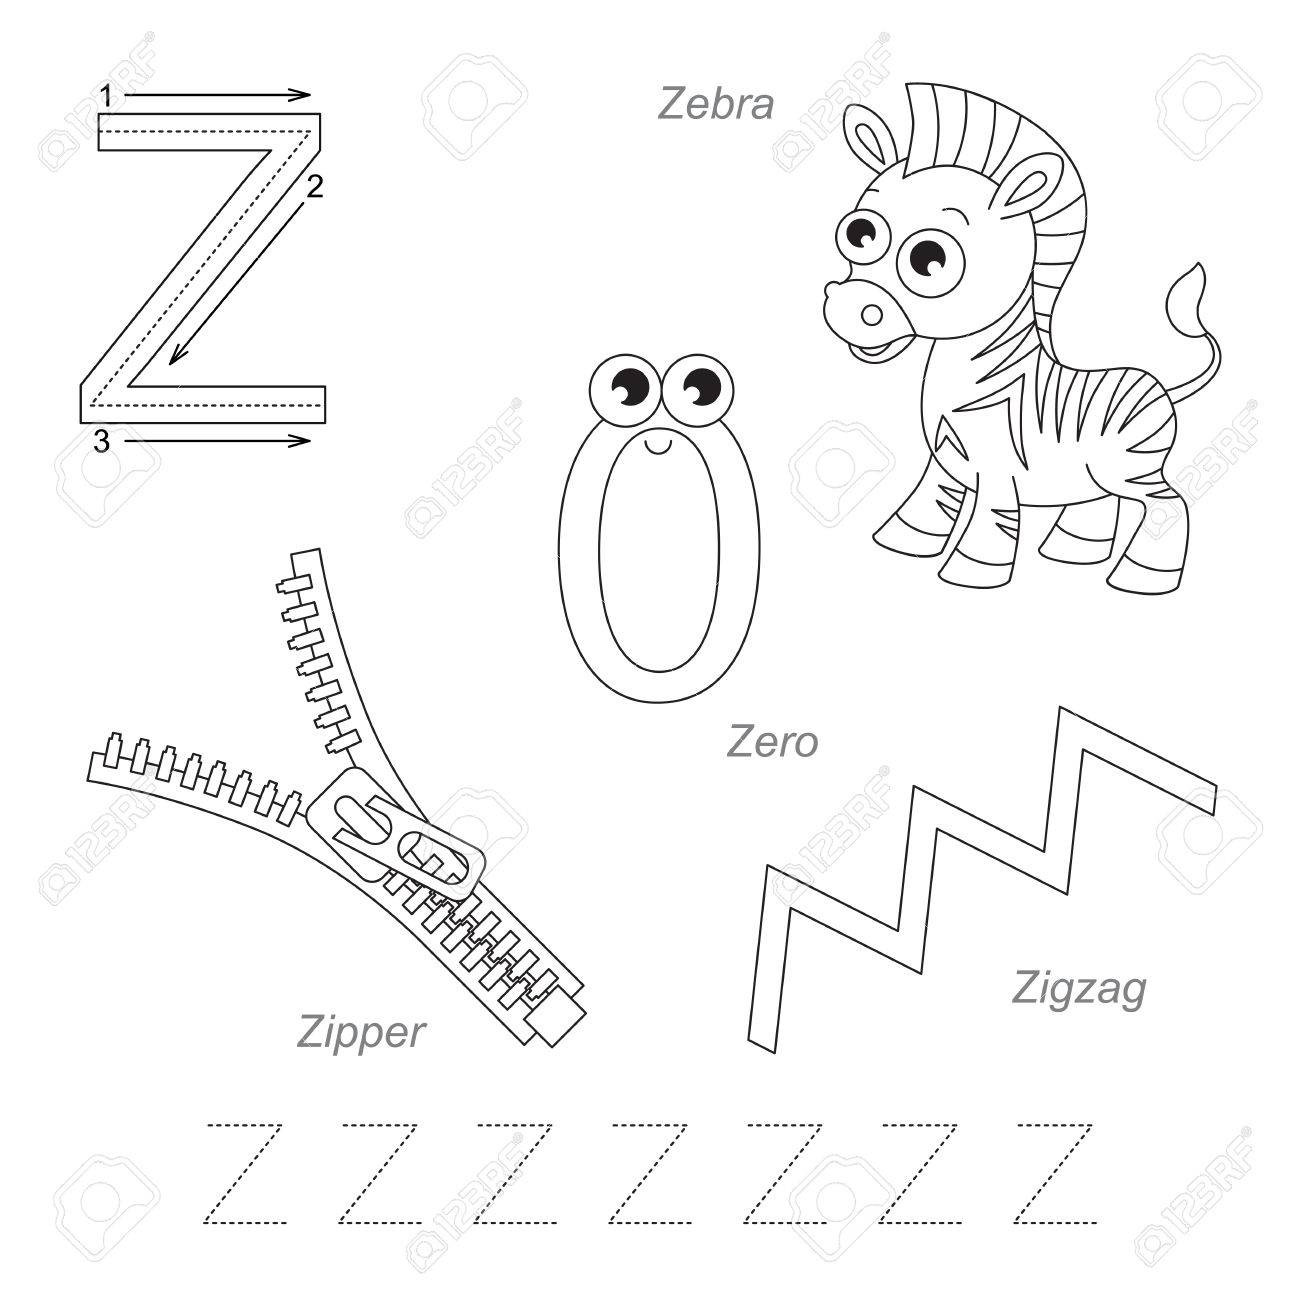 photo stock vector tracing worksheet for children full english alphabet from a to z pictures for letter z the colorless